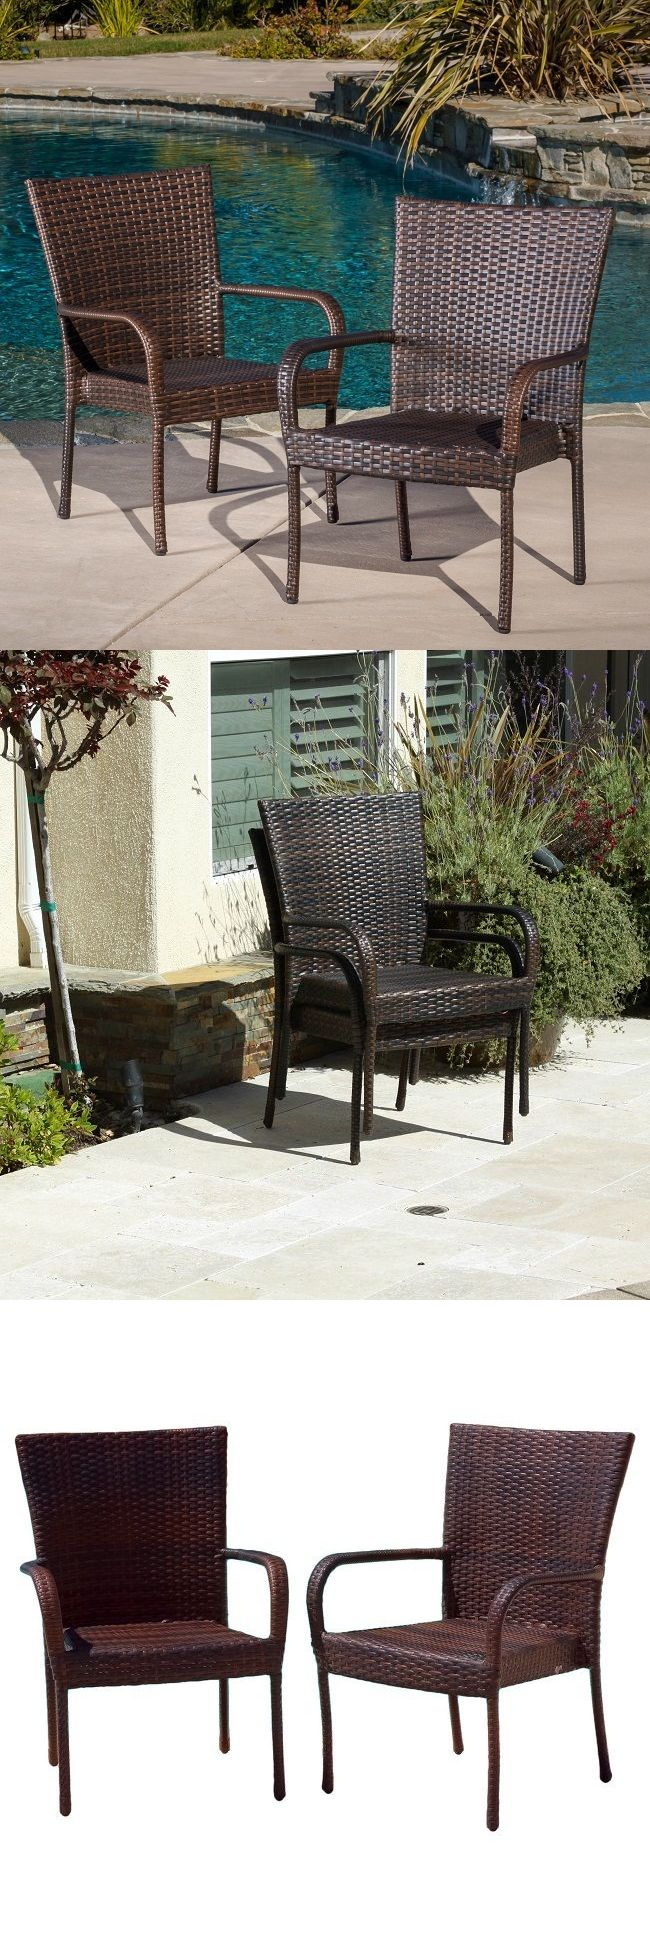 Chairs 79682: Wicker Patio Chairs Outdoor Dining Club Chair Resin Stackable Furniture Set Of 2 -> BUY IT NOW ONLY: $121.51 on eBay!